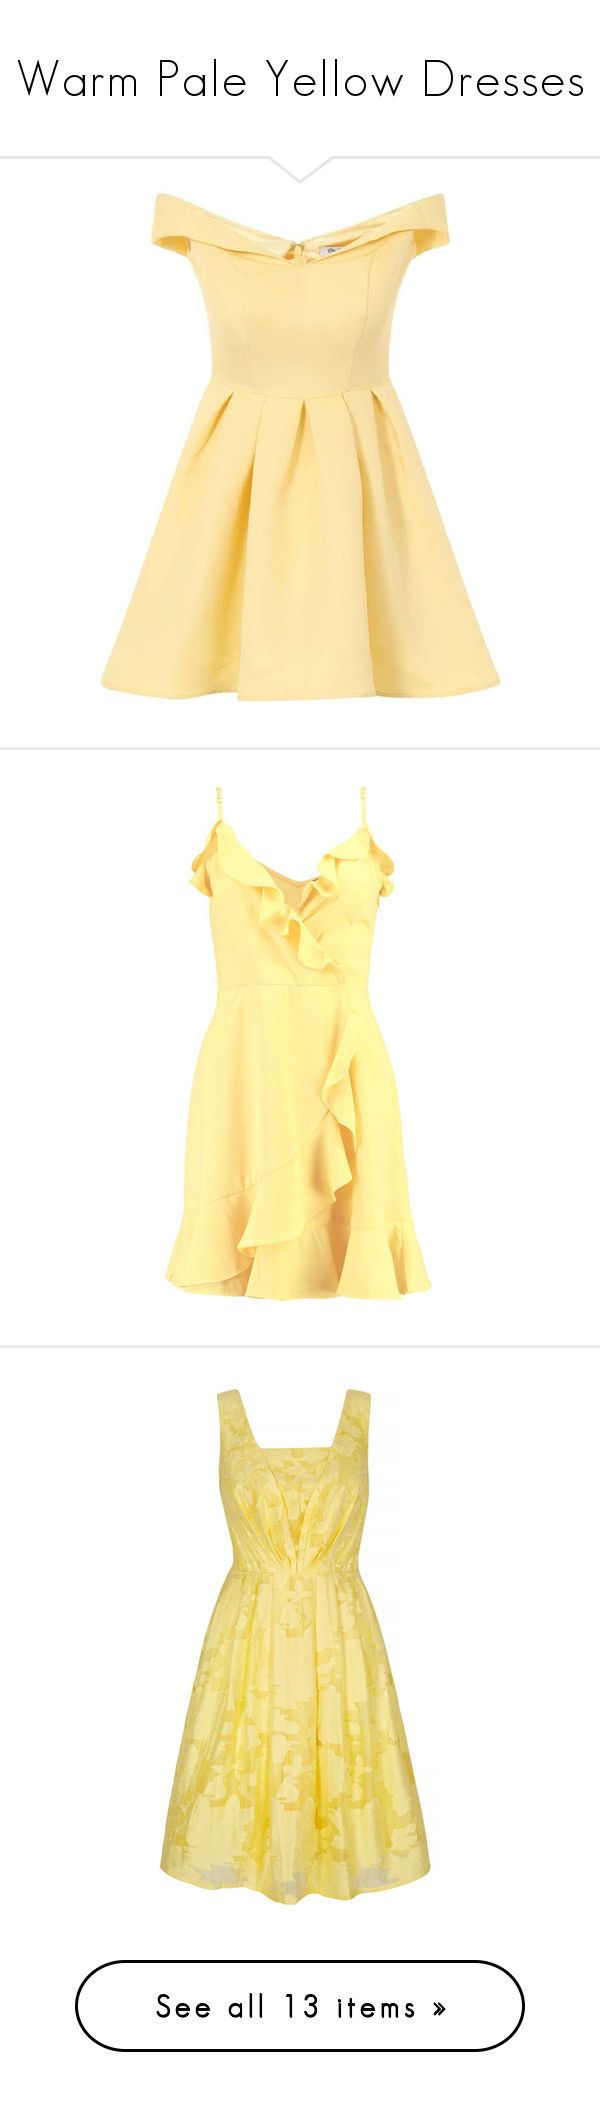 """Warm Pale Yellow Dresses"" by tegan-b-riley on Polyvore featuring dresses, yellow dresses, yellow, pleated dresses, pleated midi dress, fitted tops, midi cocktail dress, calf length dresses, party dresses and midi wrap dress"